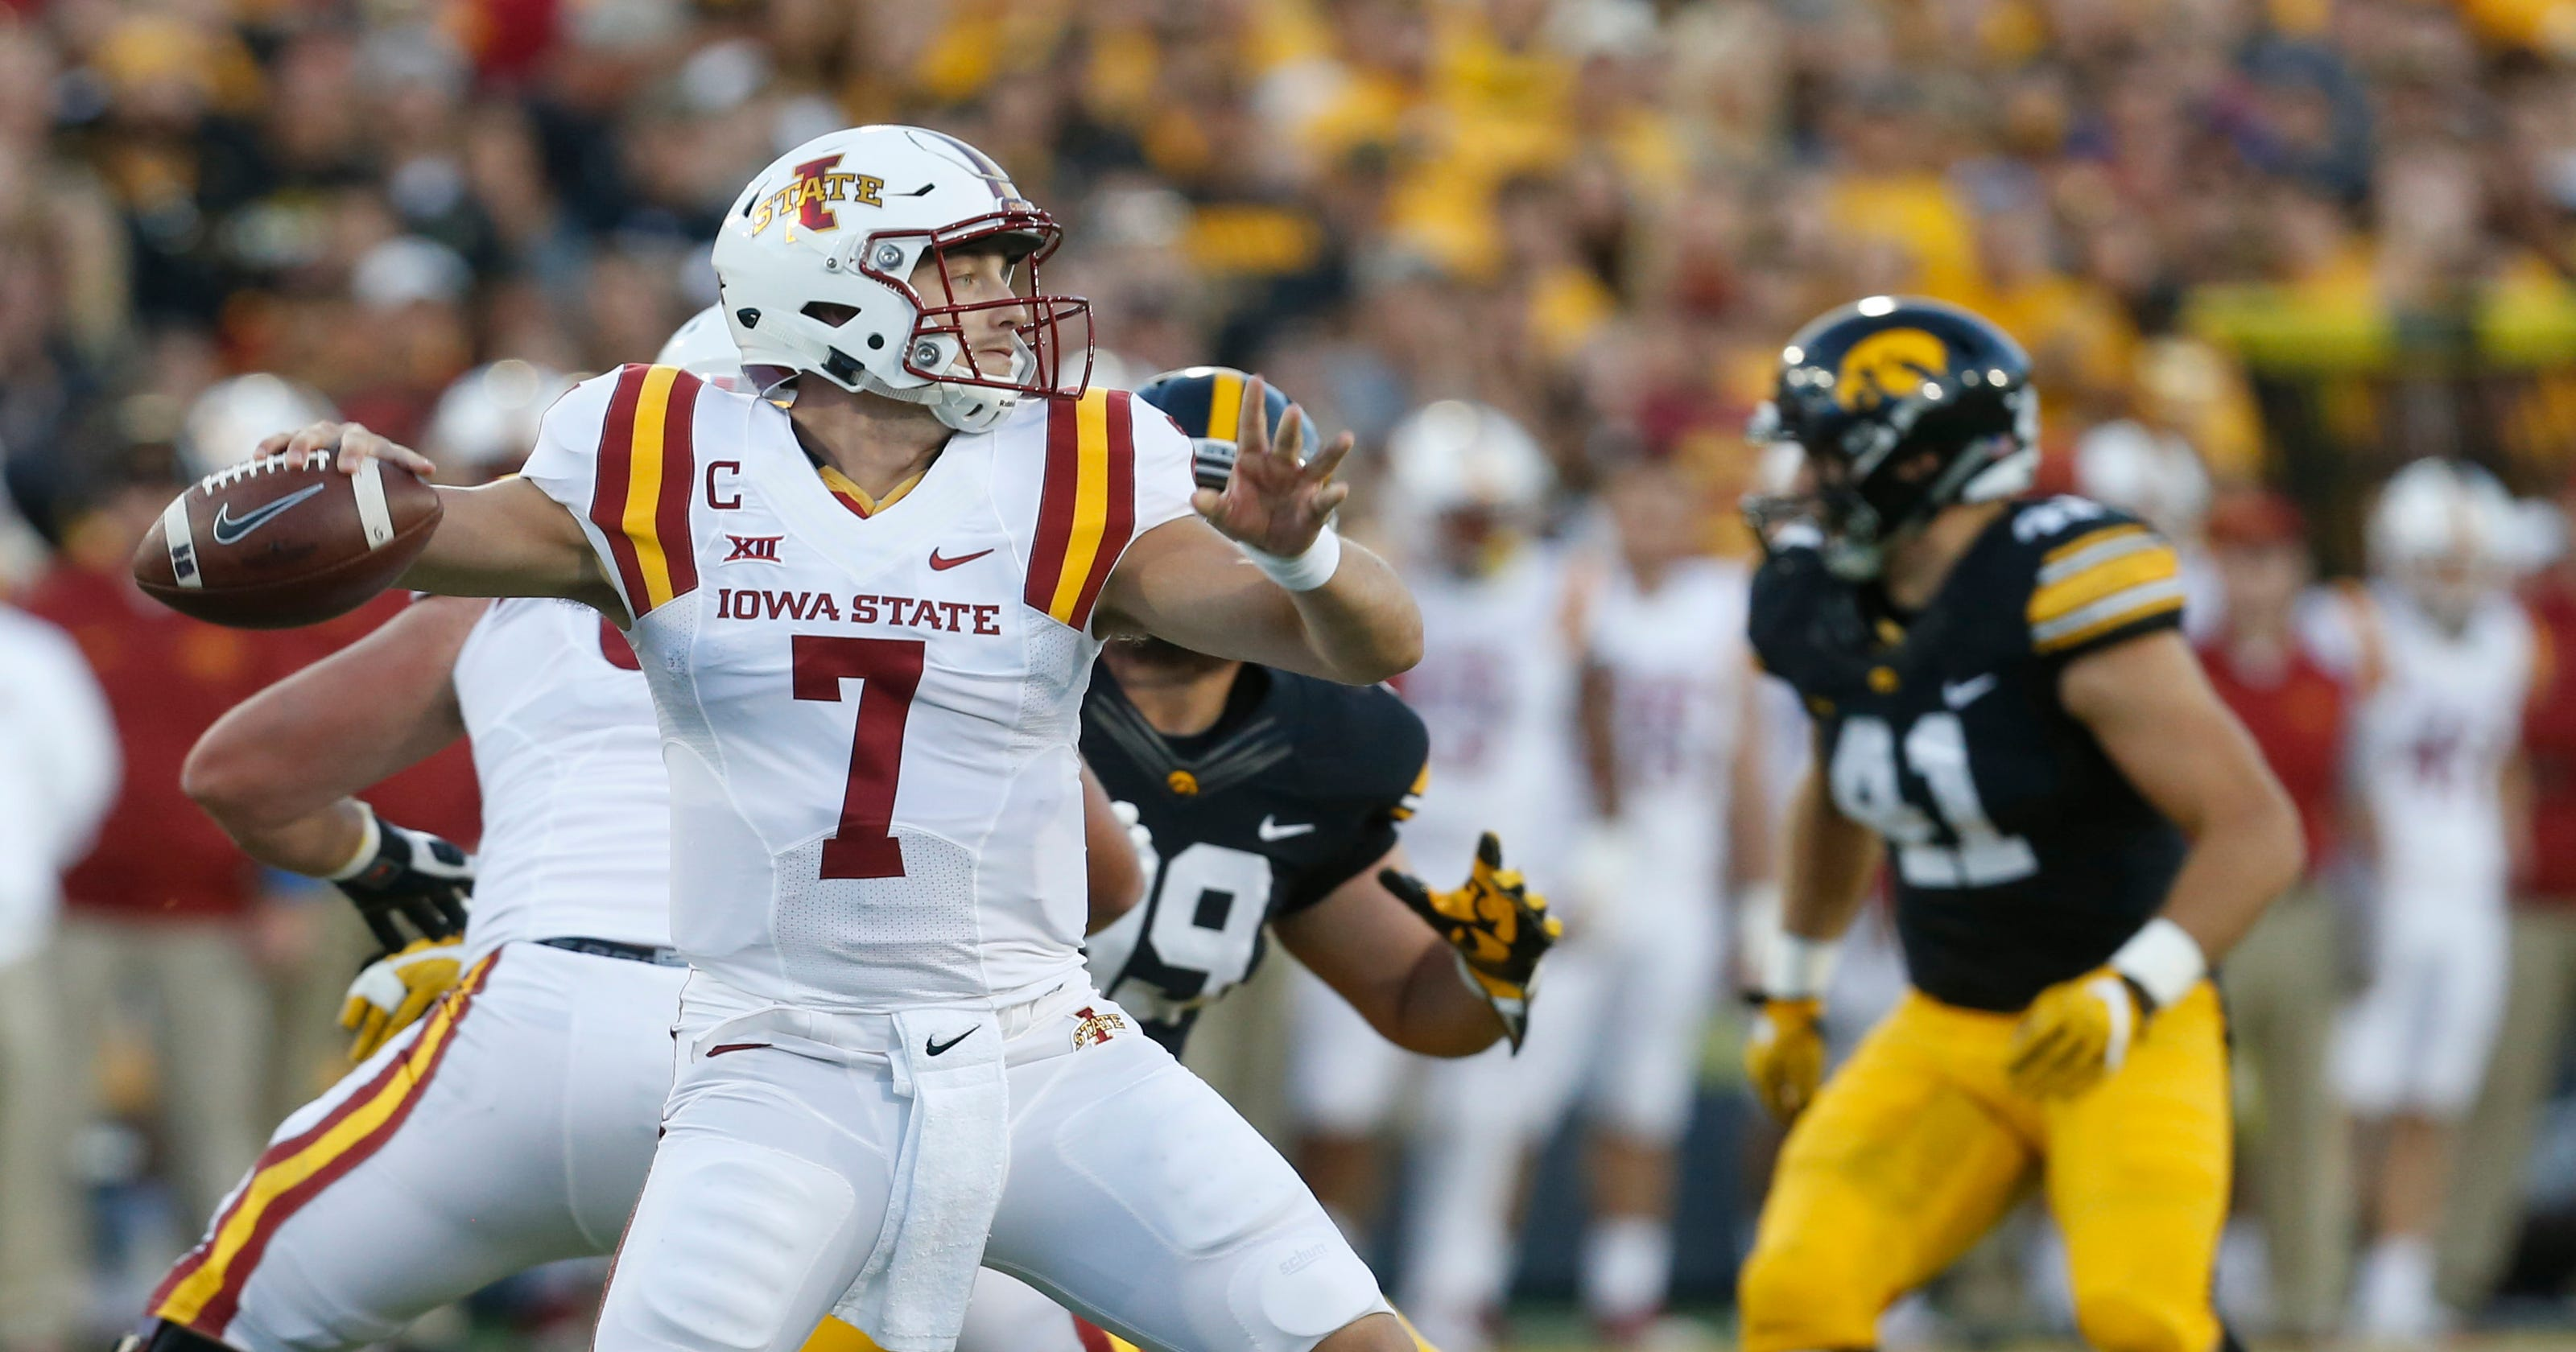 Peterson: Iowa State's problems much bigger than Joel Lanning